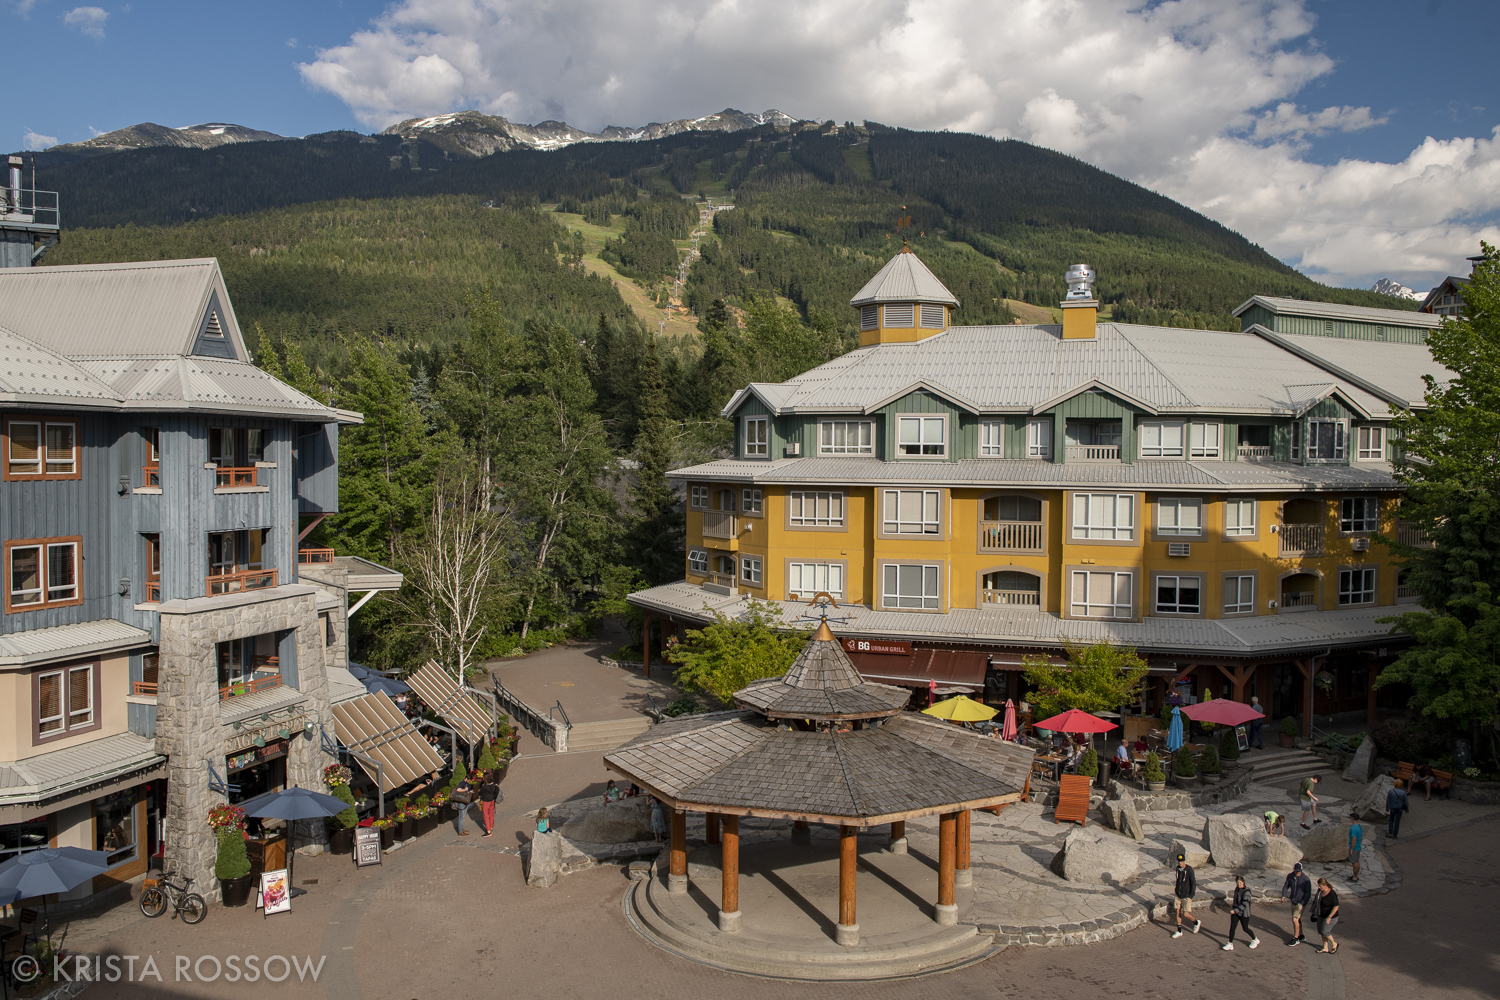 The Town Plaza in Whistler VIllage, British Columbia, Canada.